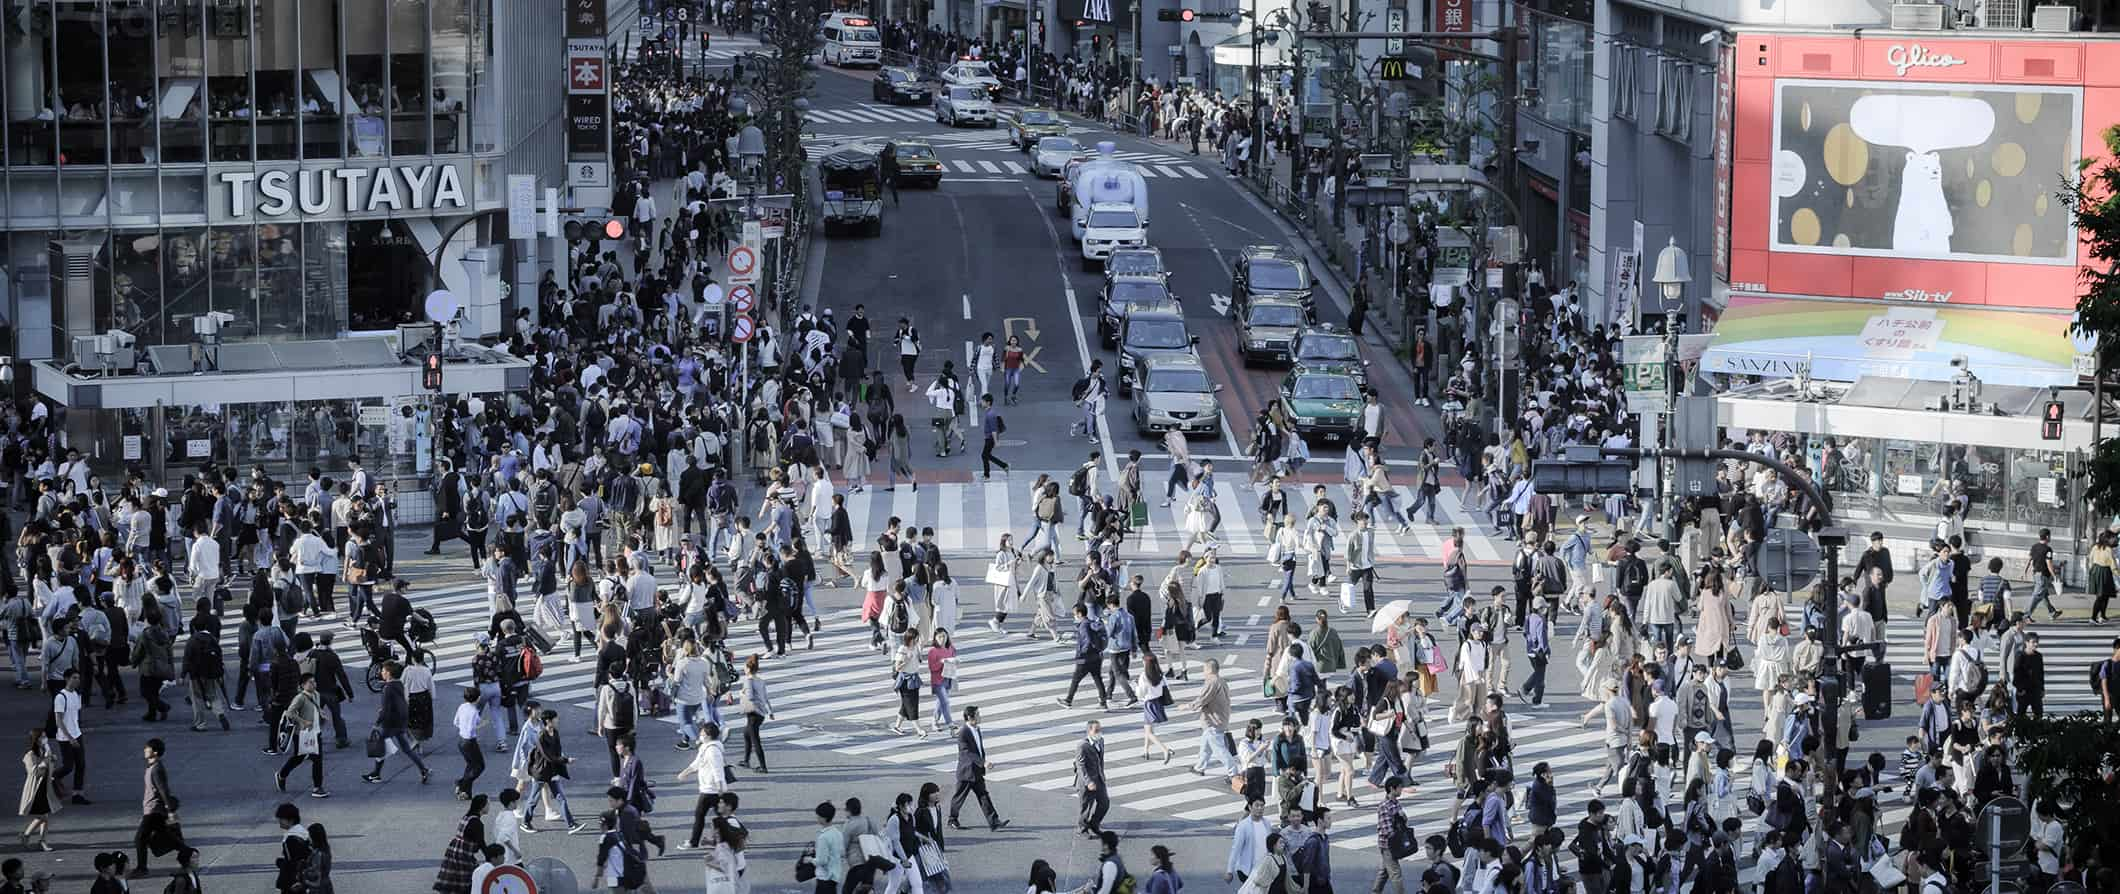 a busy intersection in Tokyo, Japan